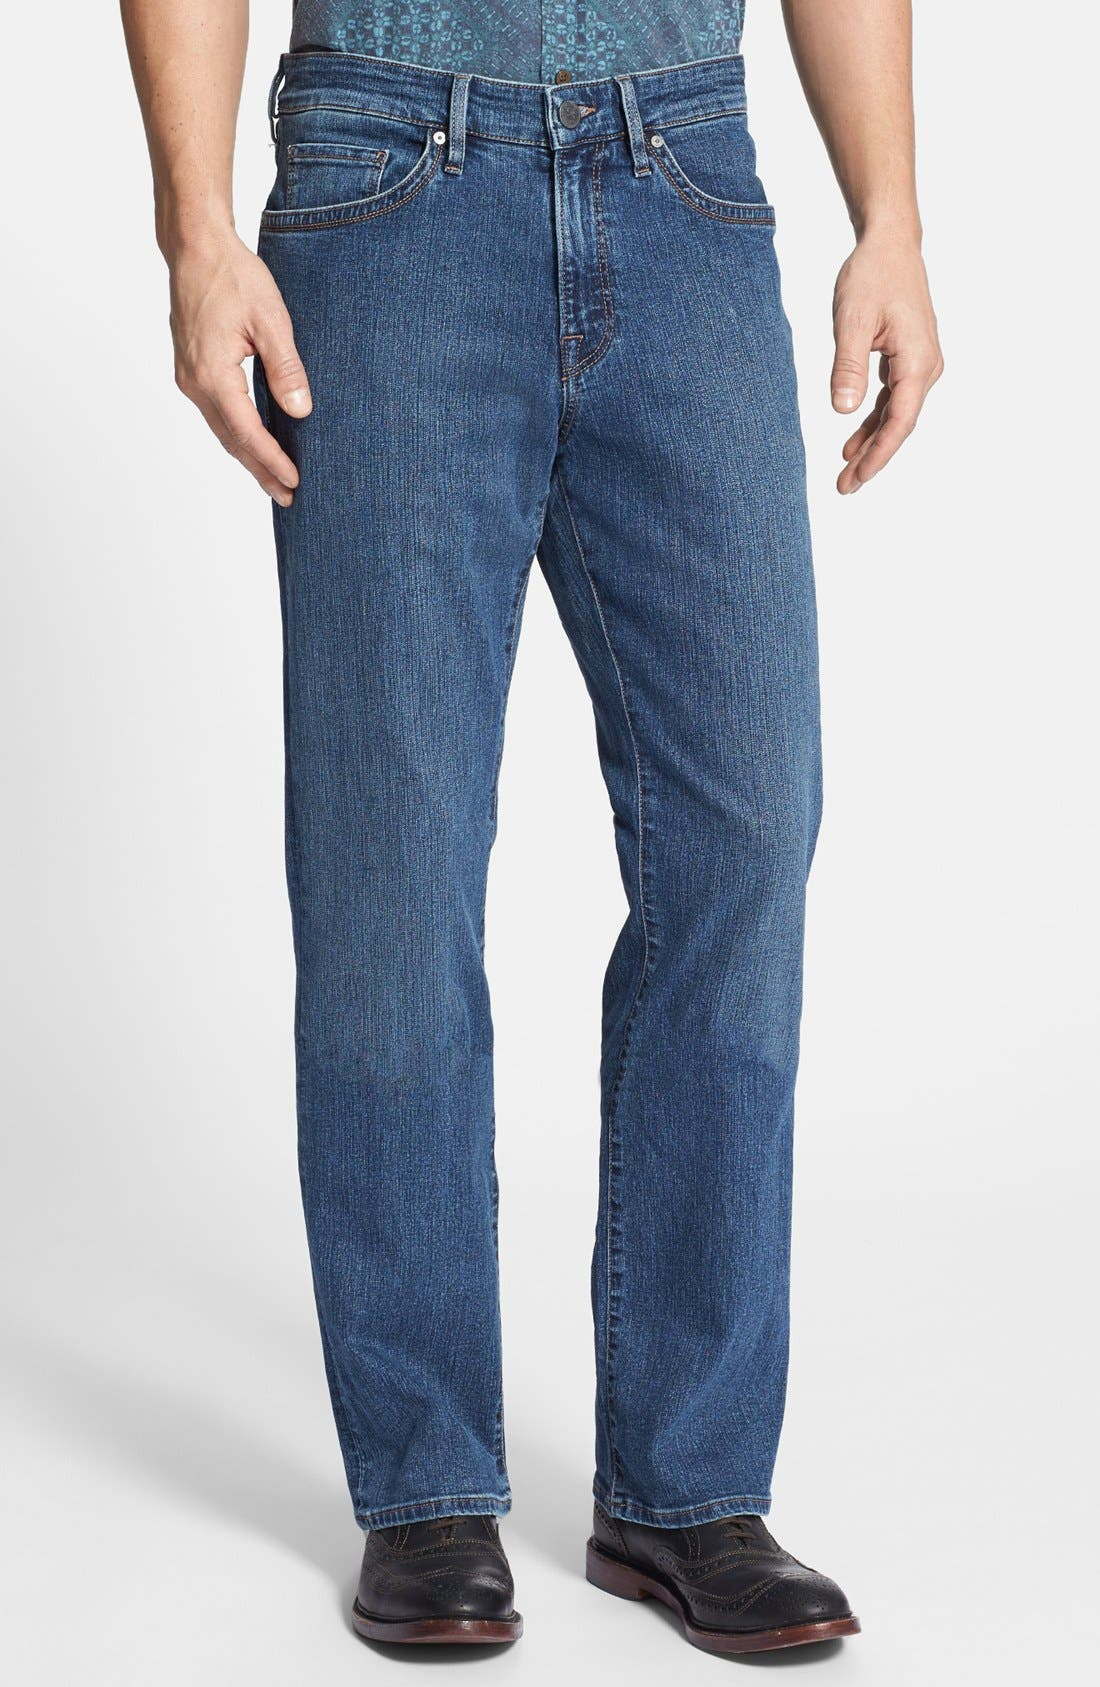 34 HERITAGE Charisma Classic Relaxed Fit Jeans